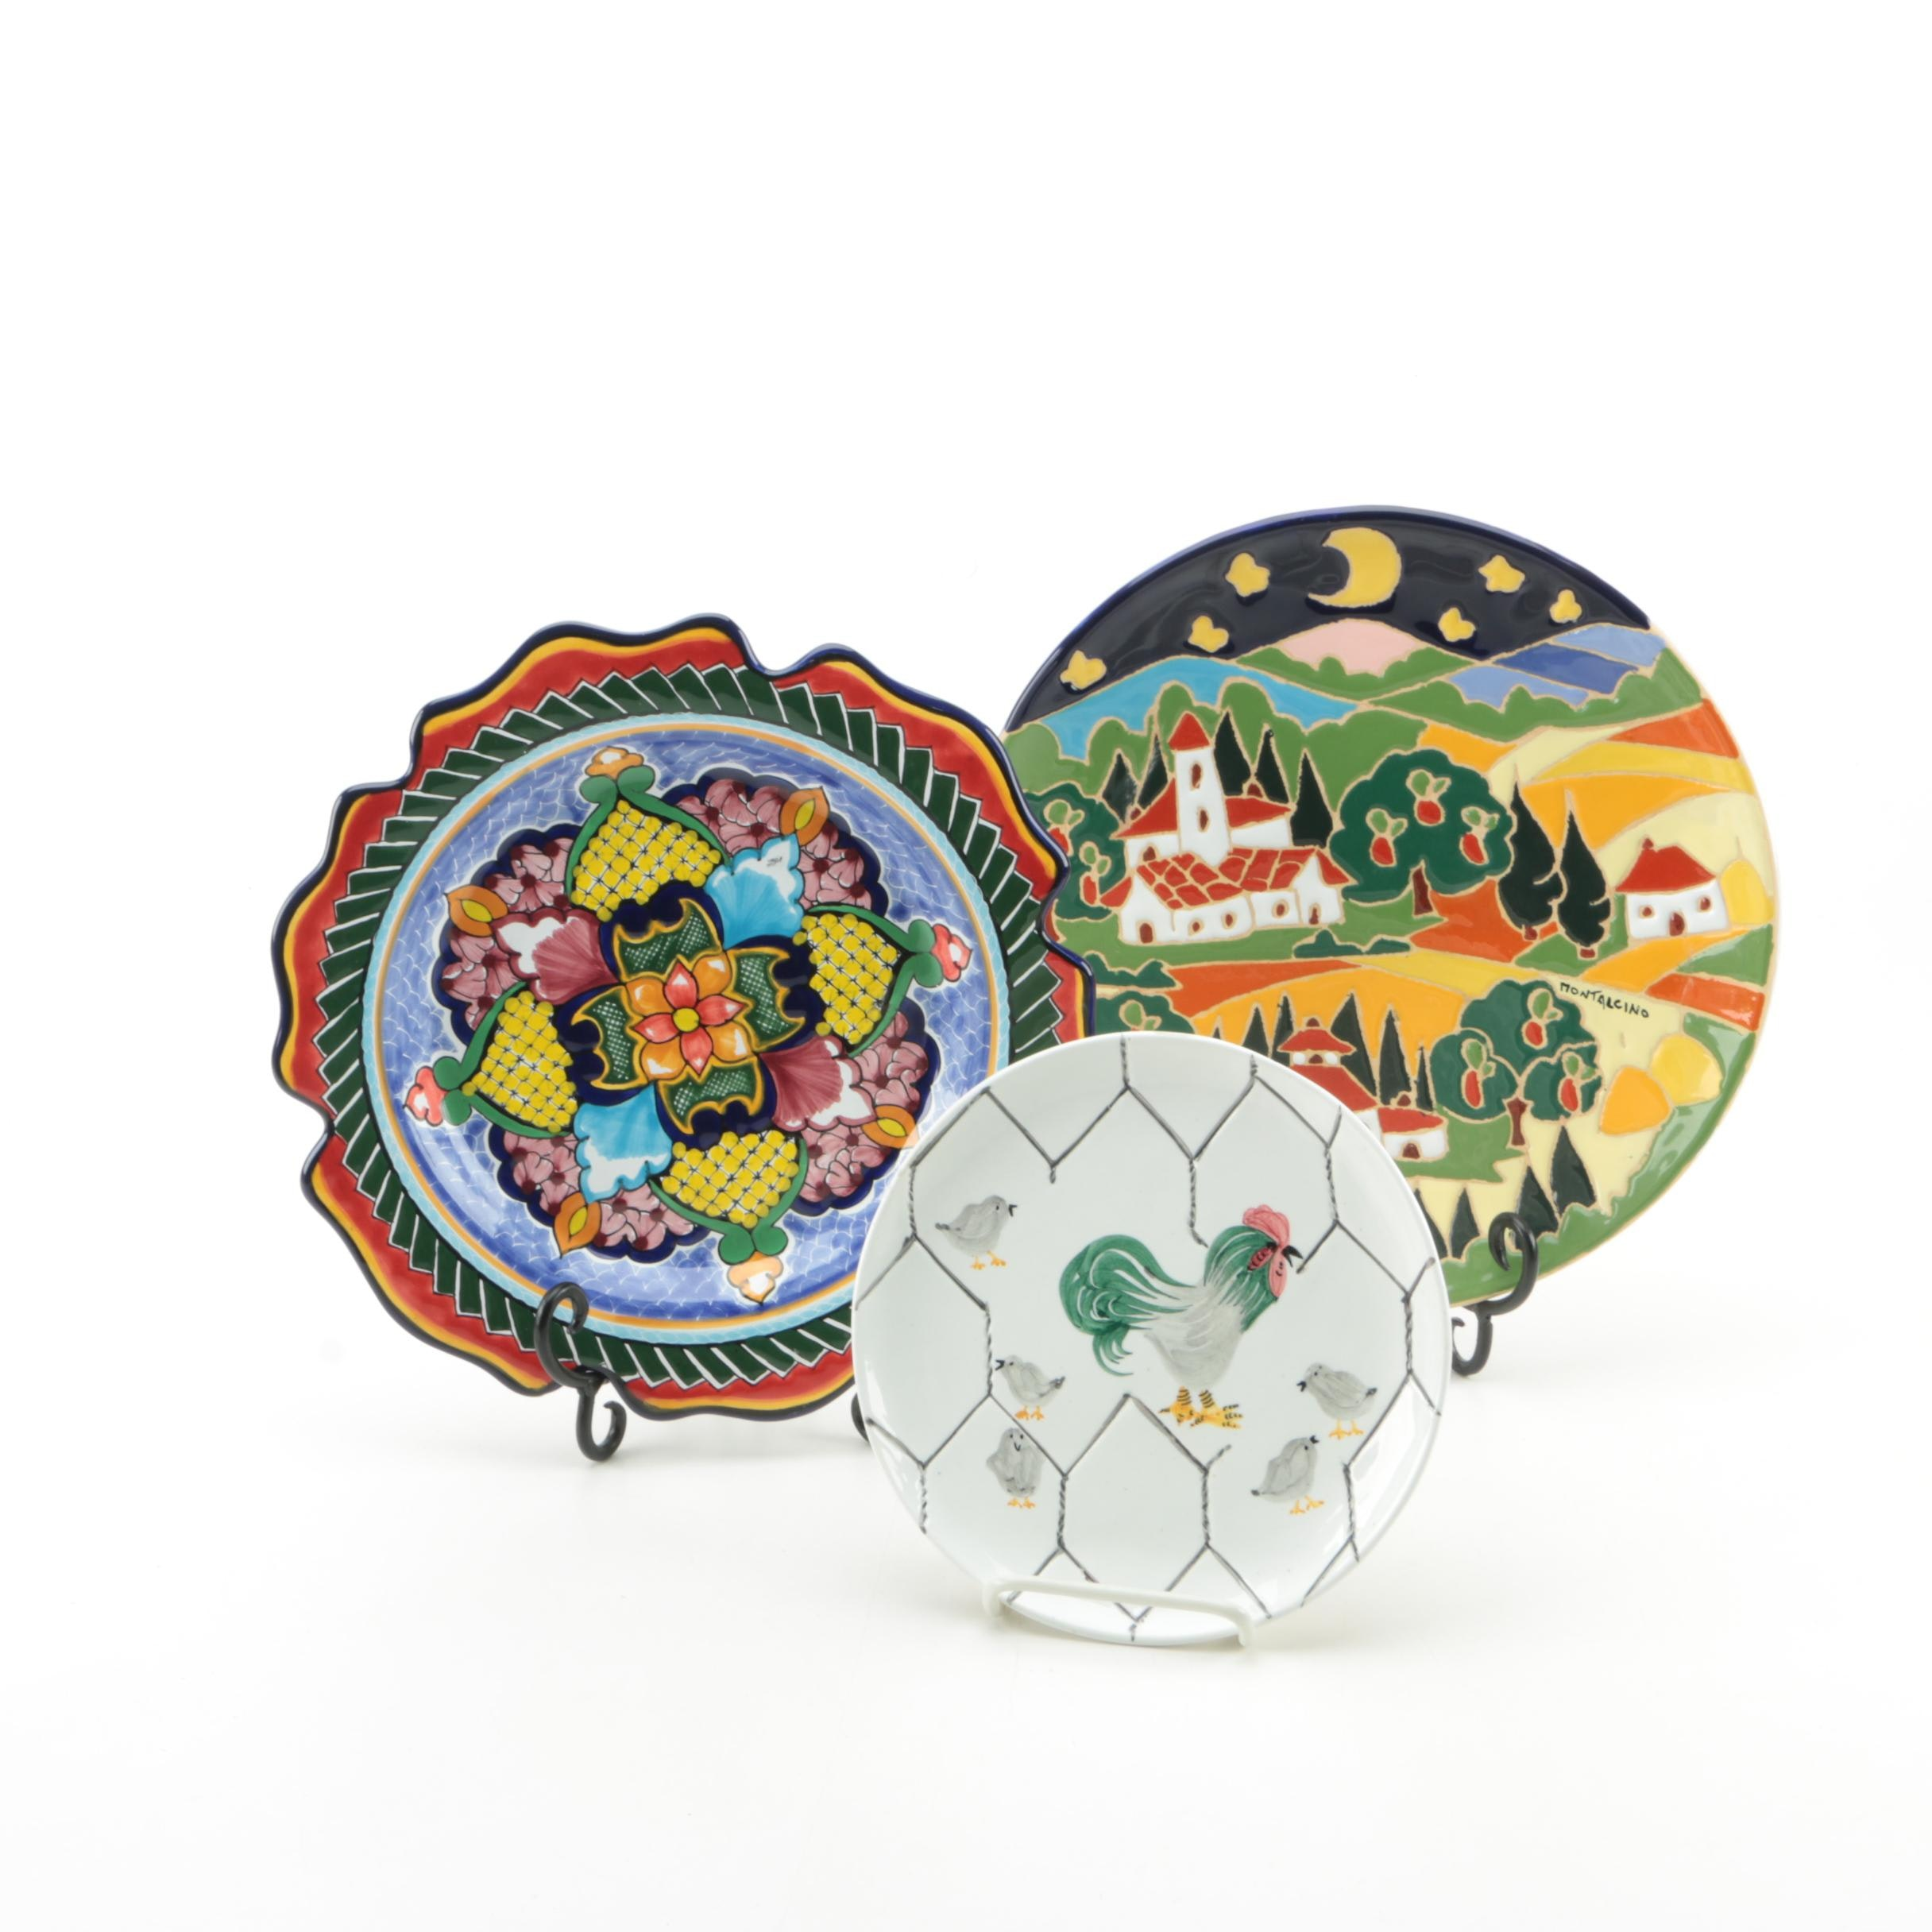 Hand-Painted Italian and Mexican Decorative Plates ...  sc 1 st  EBTH.com & Hand-Painted Italian and Mexican Decorative Plates : EBTH